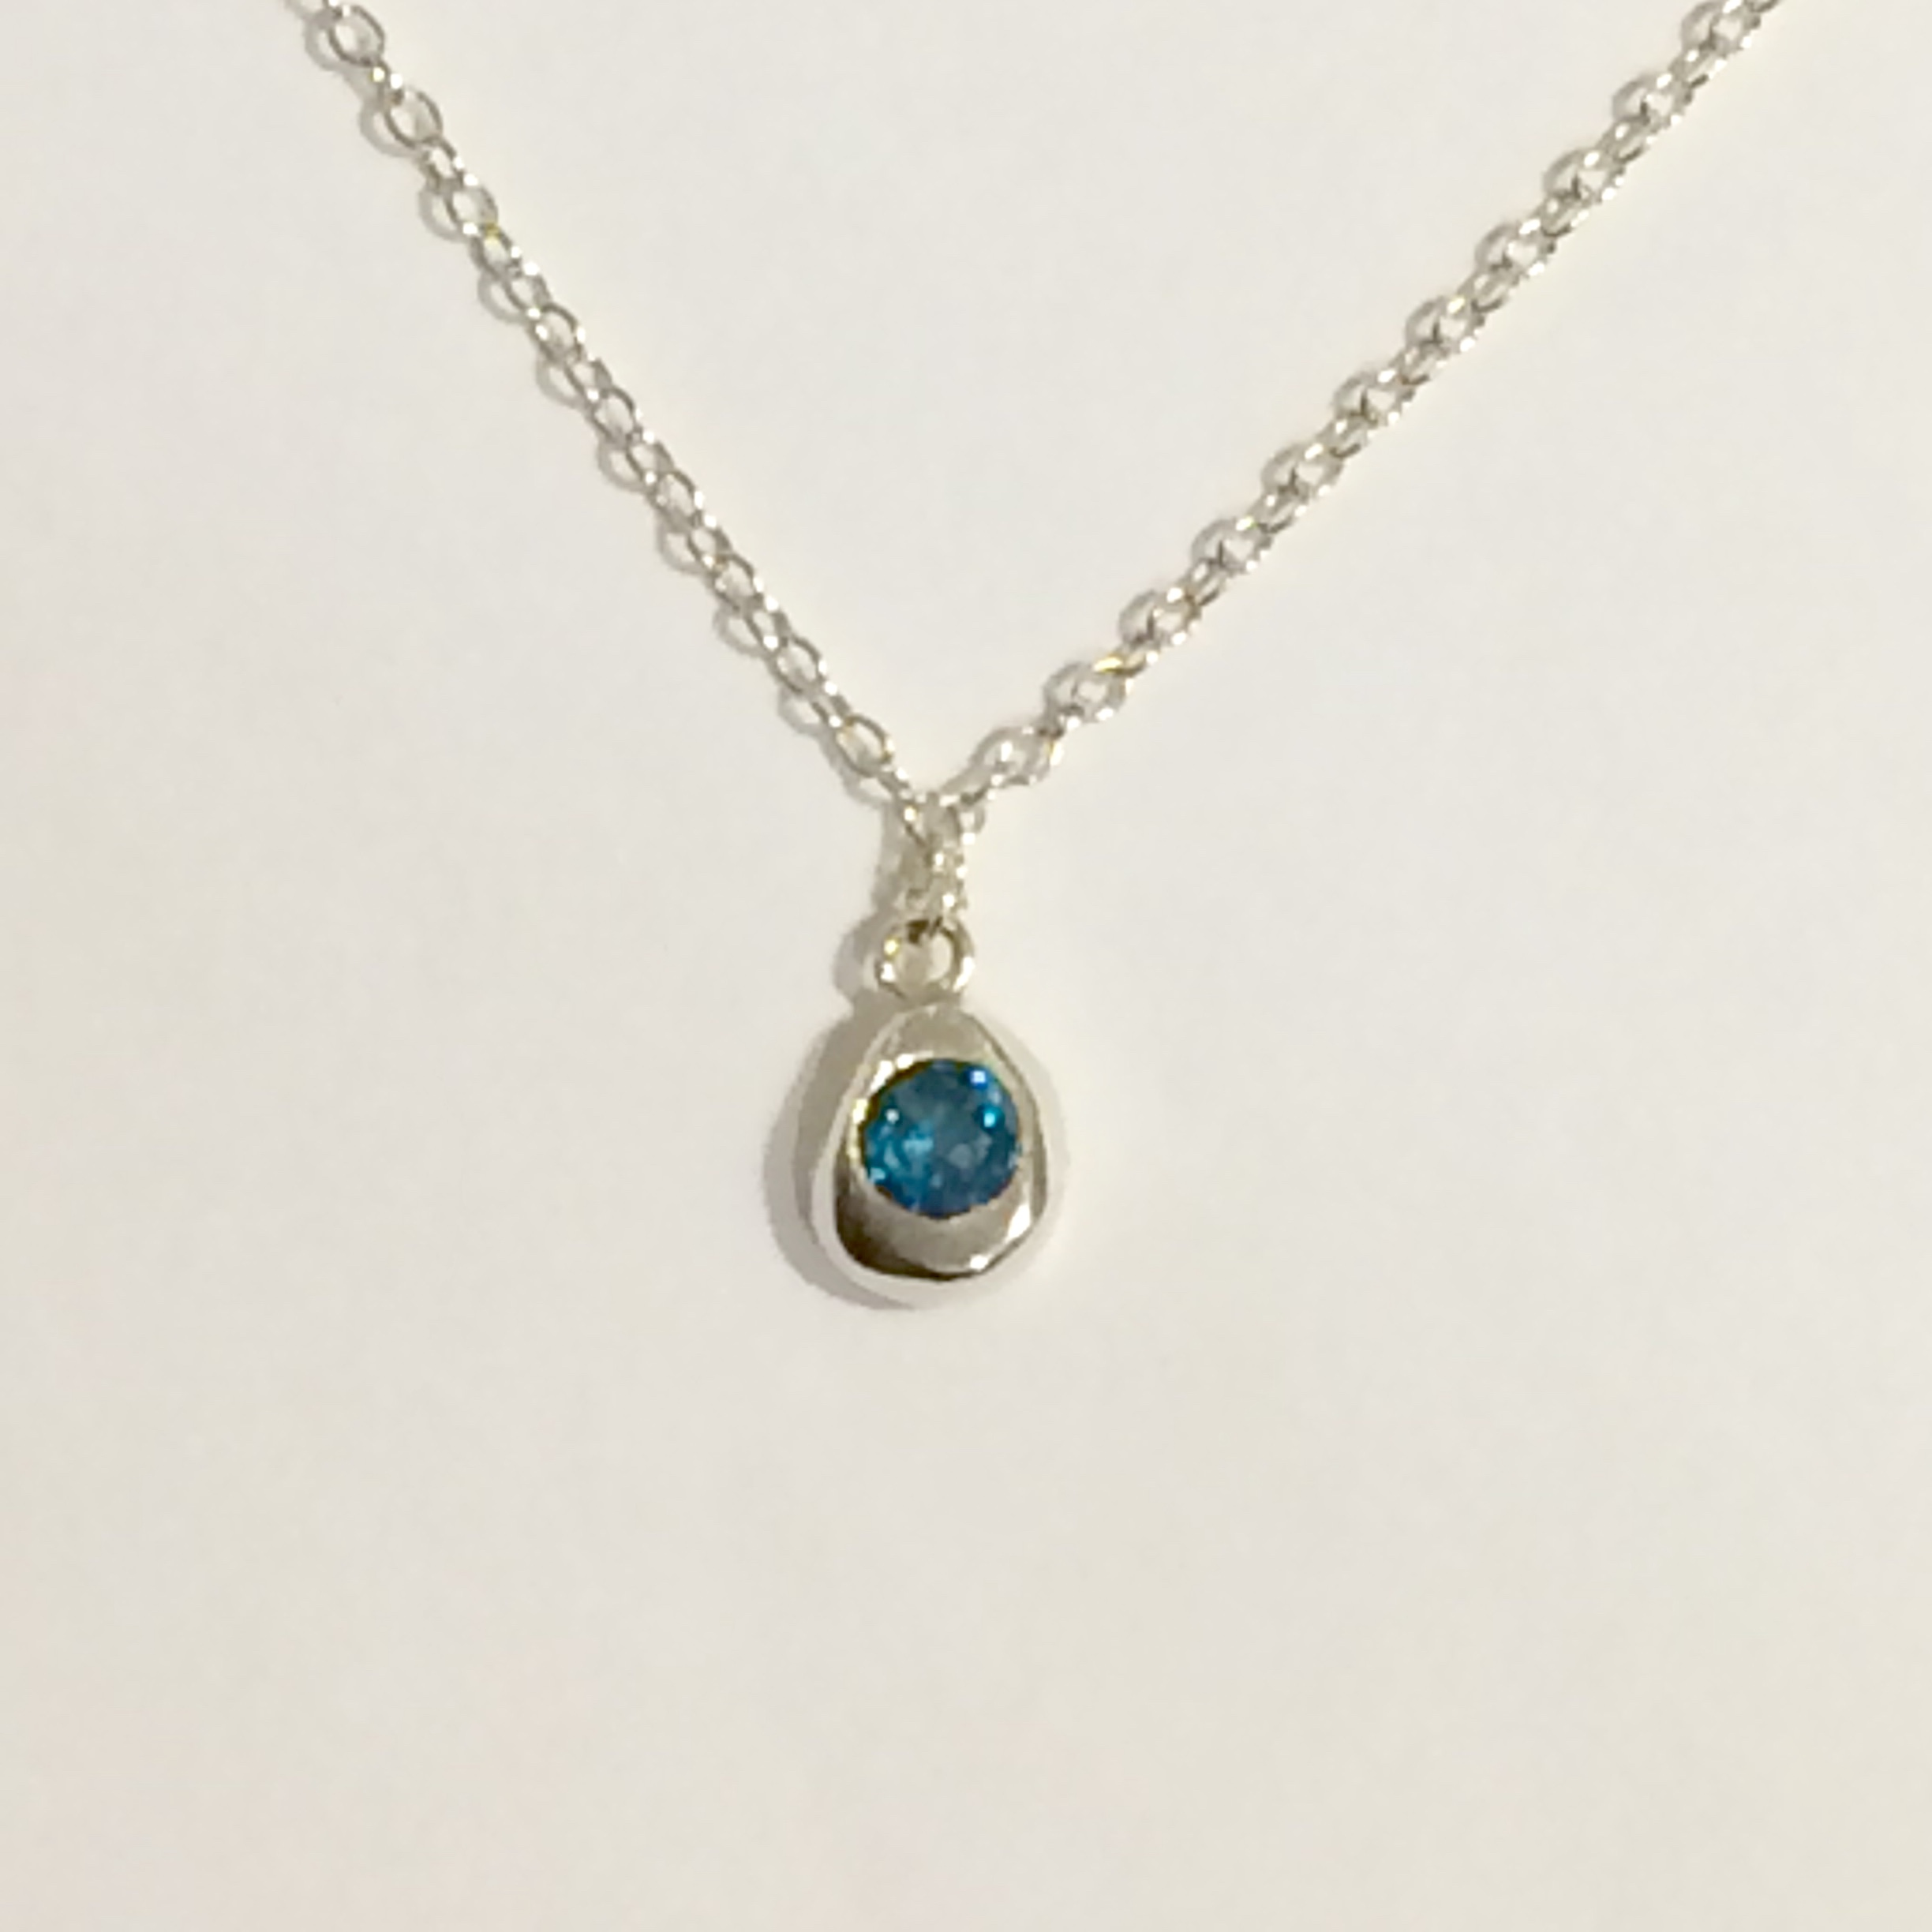 Silver and Topaz Pendant Necklace